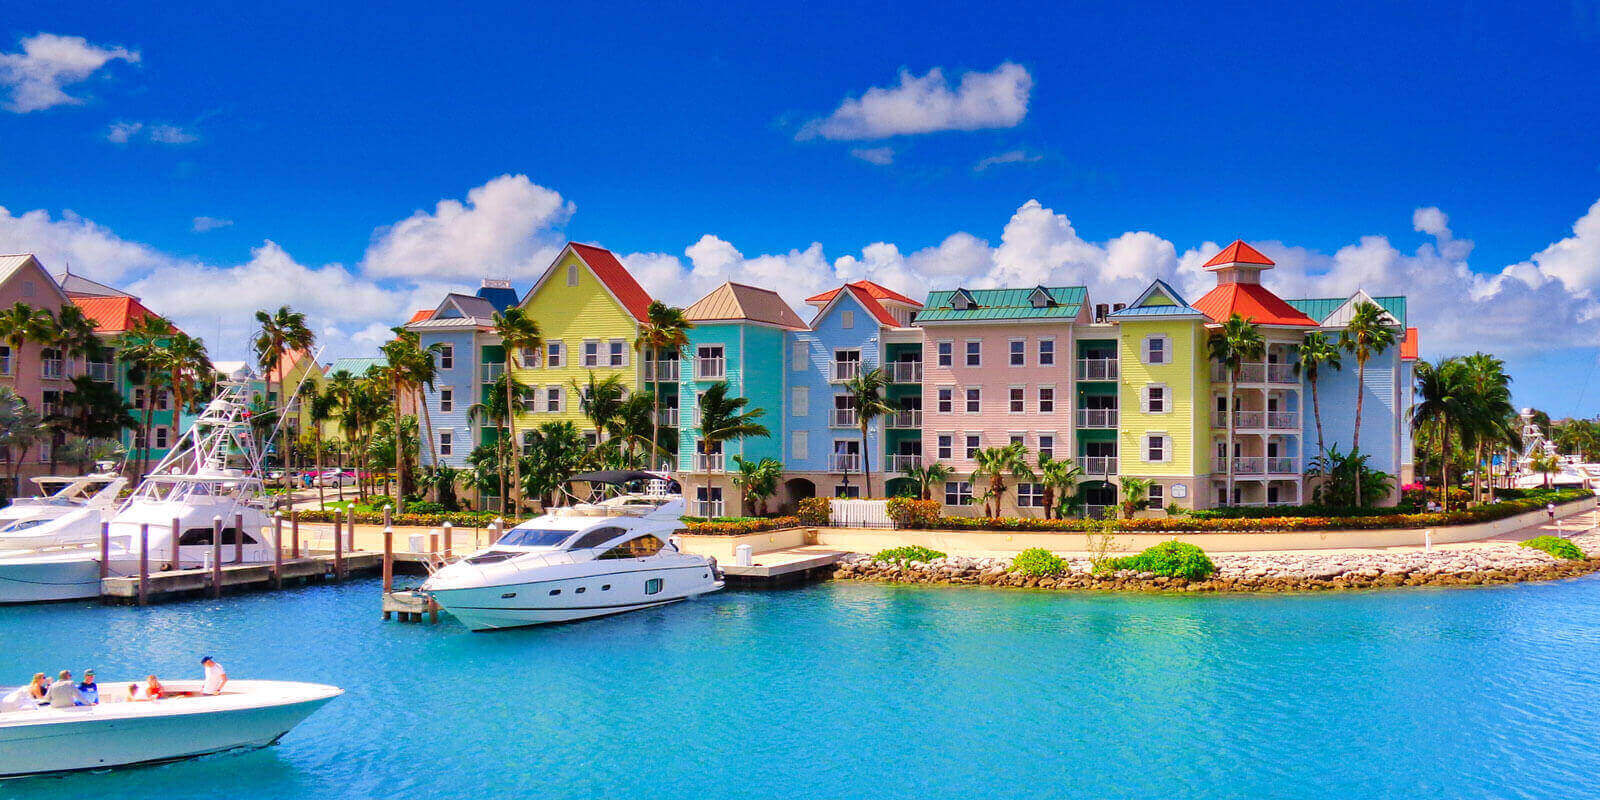 Colorful Houses in Bahamas